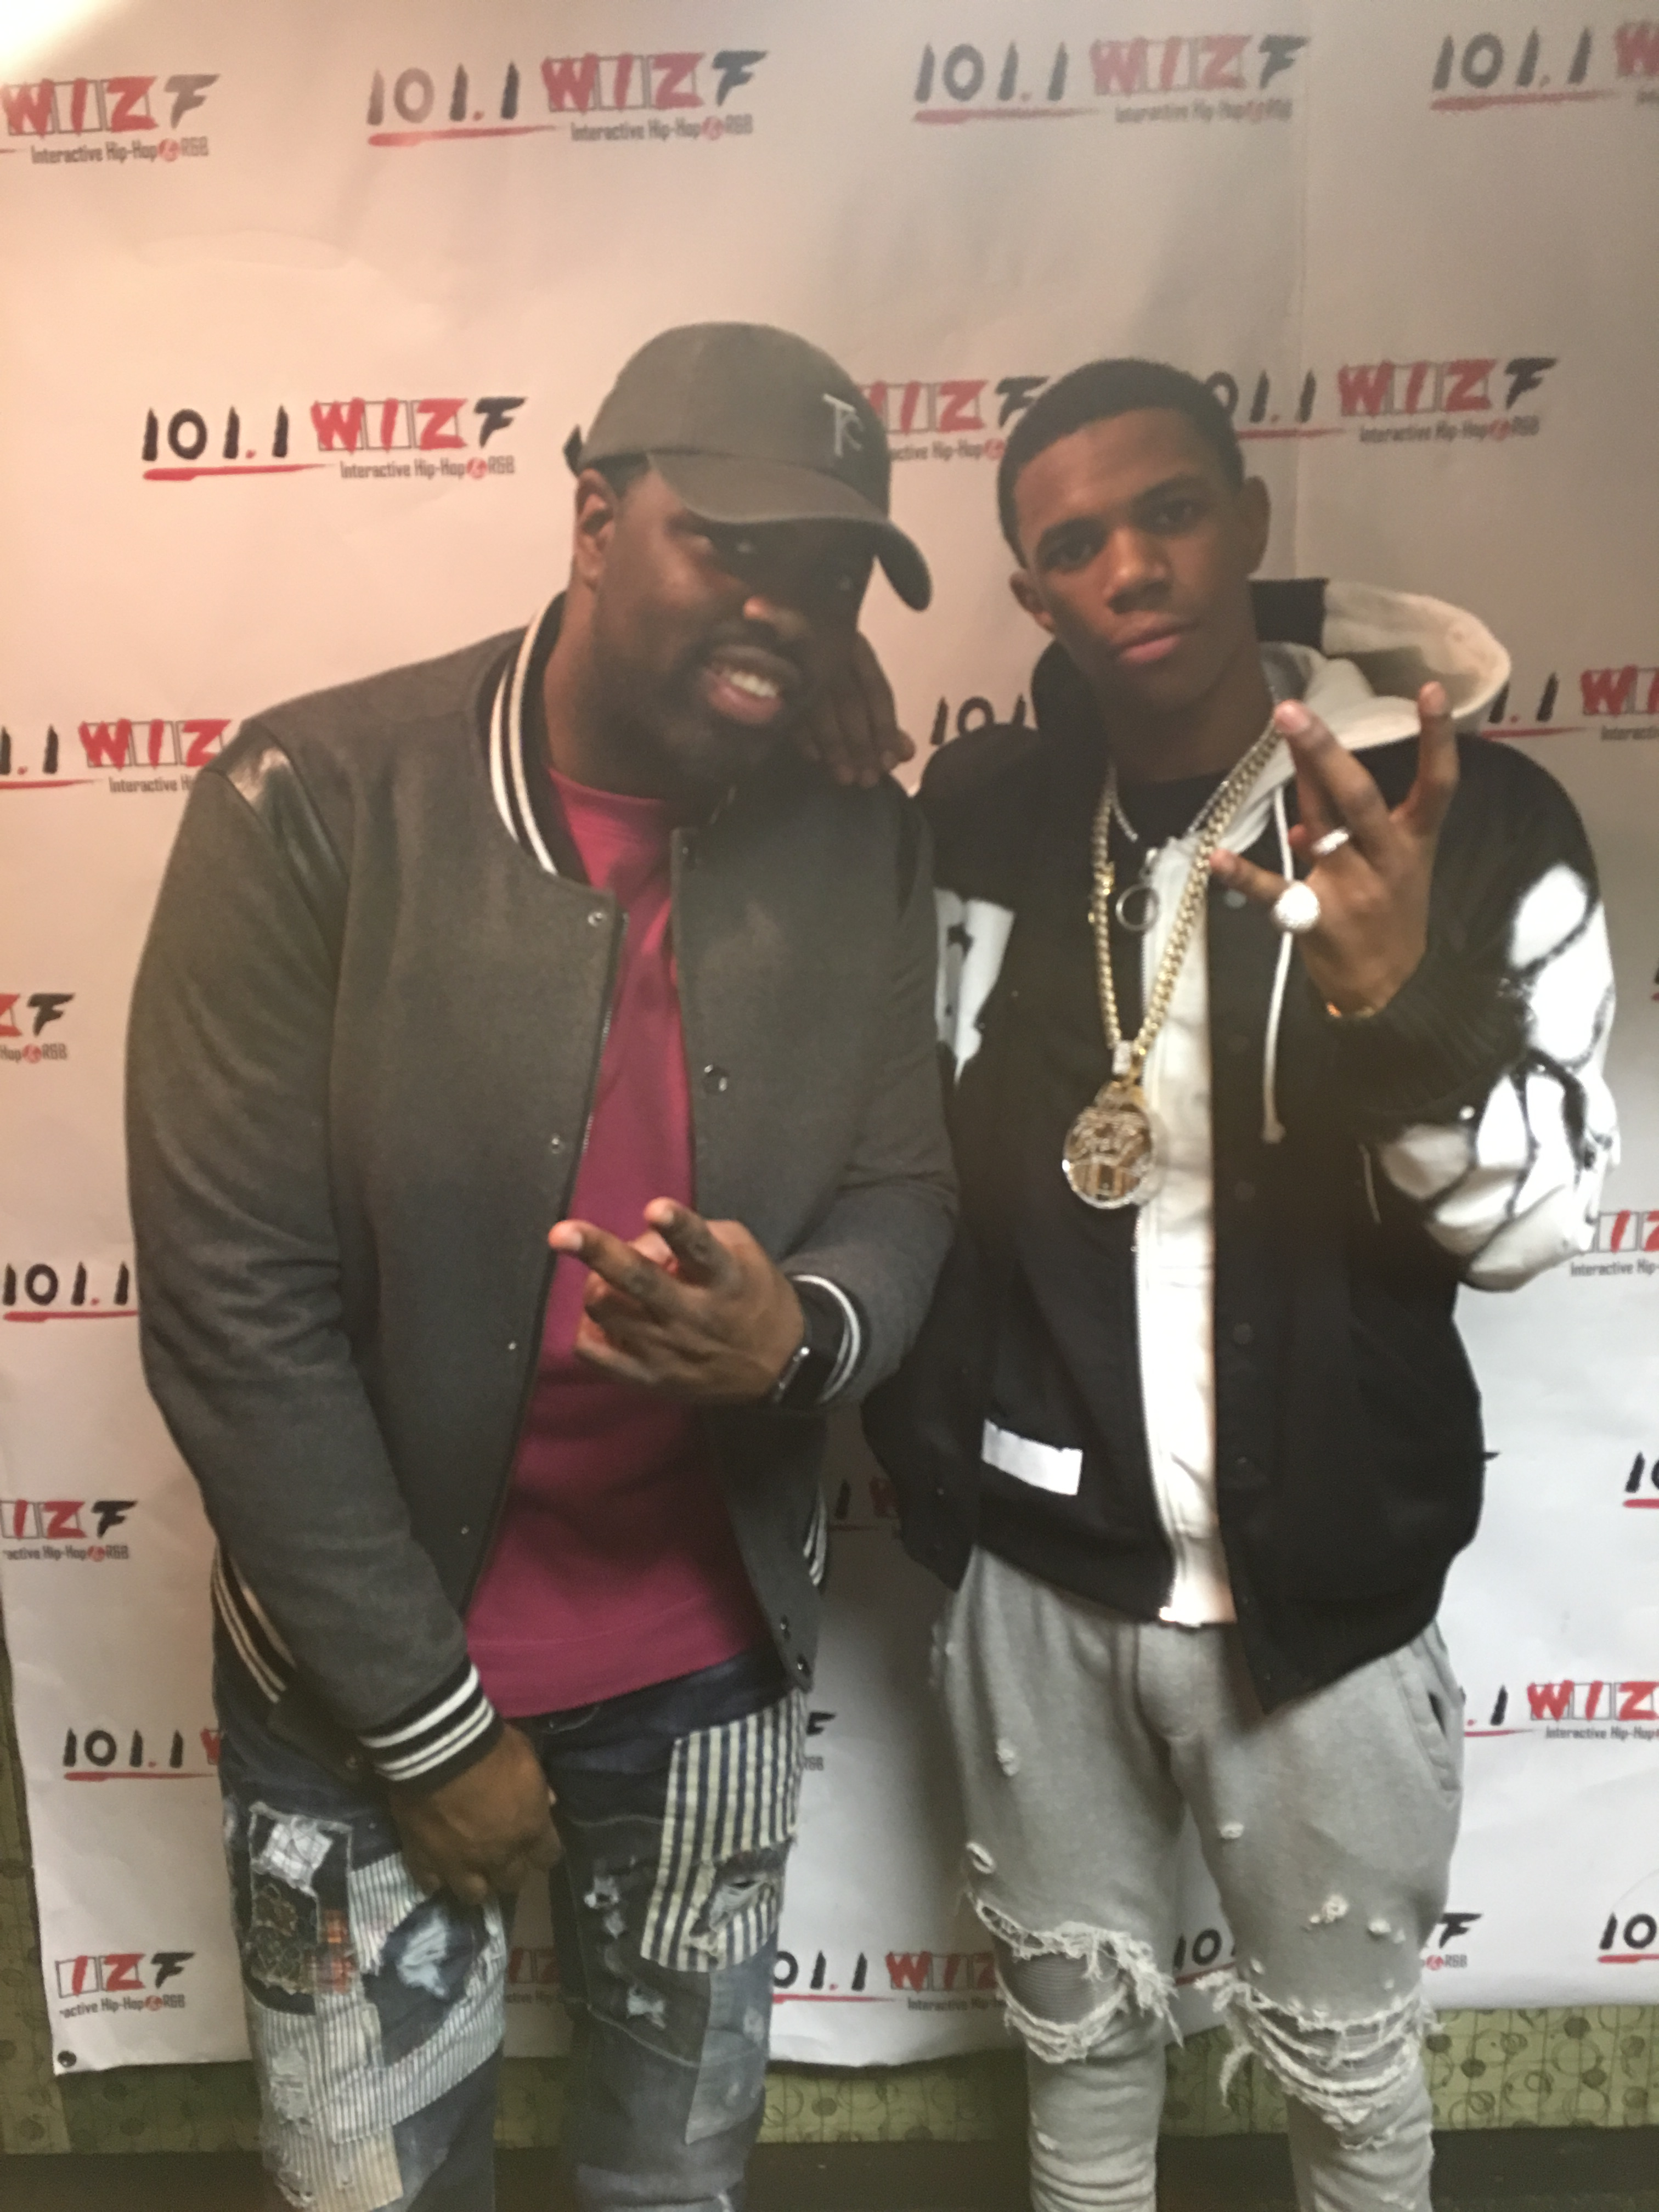 A-Boogie interview on 101.1 The wiz